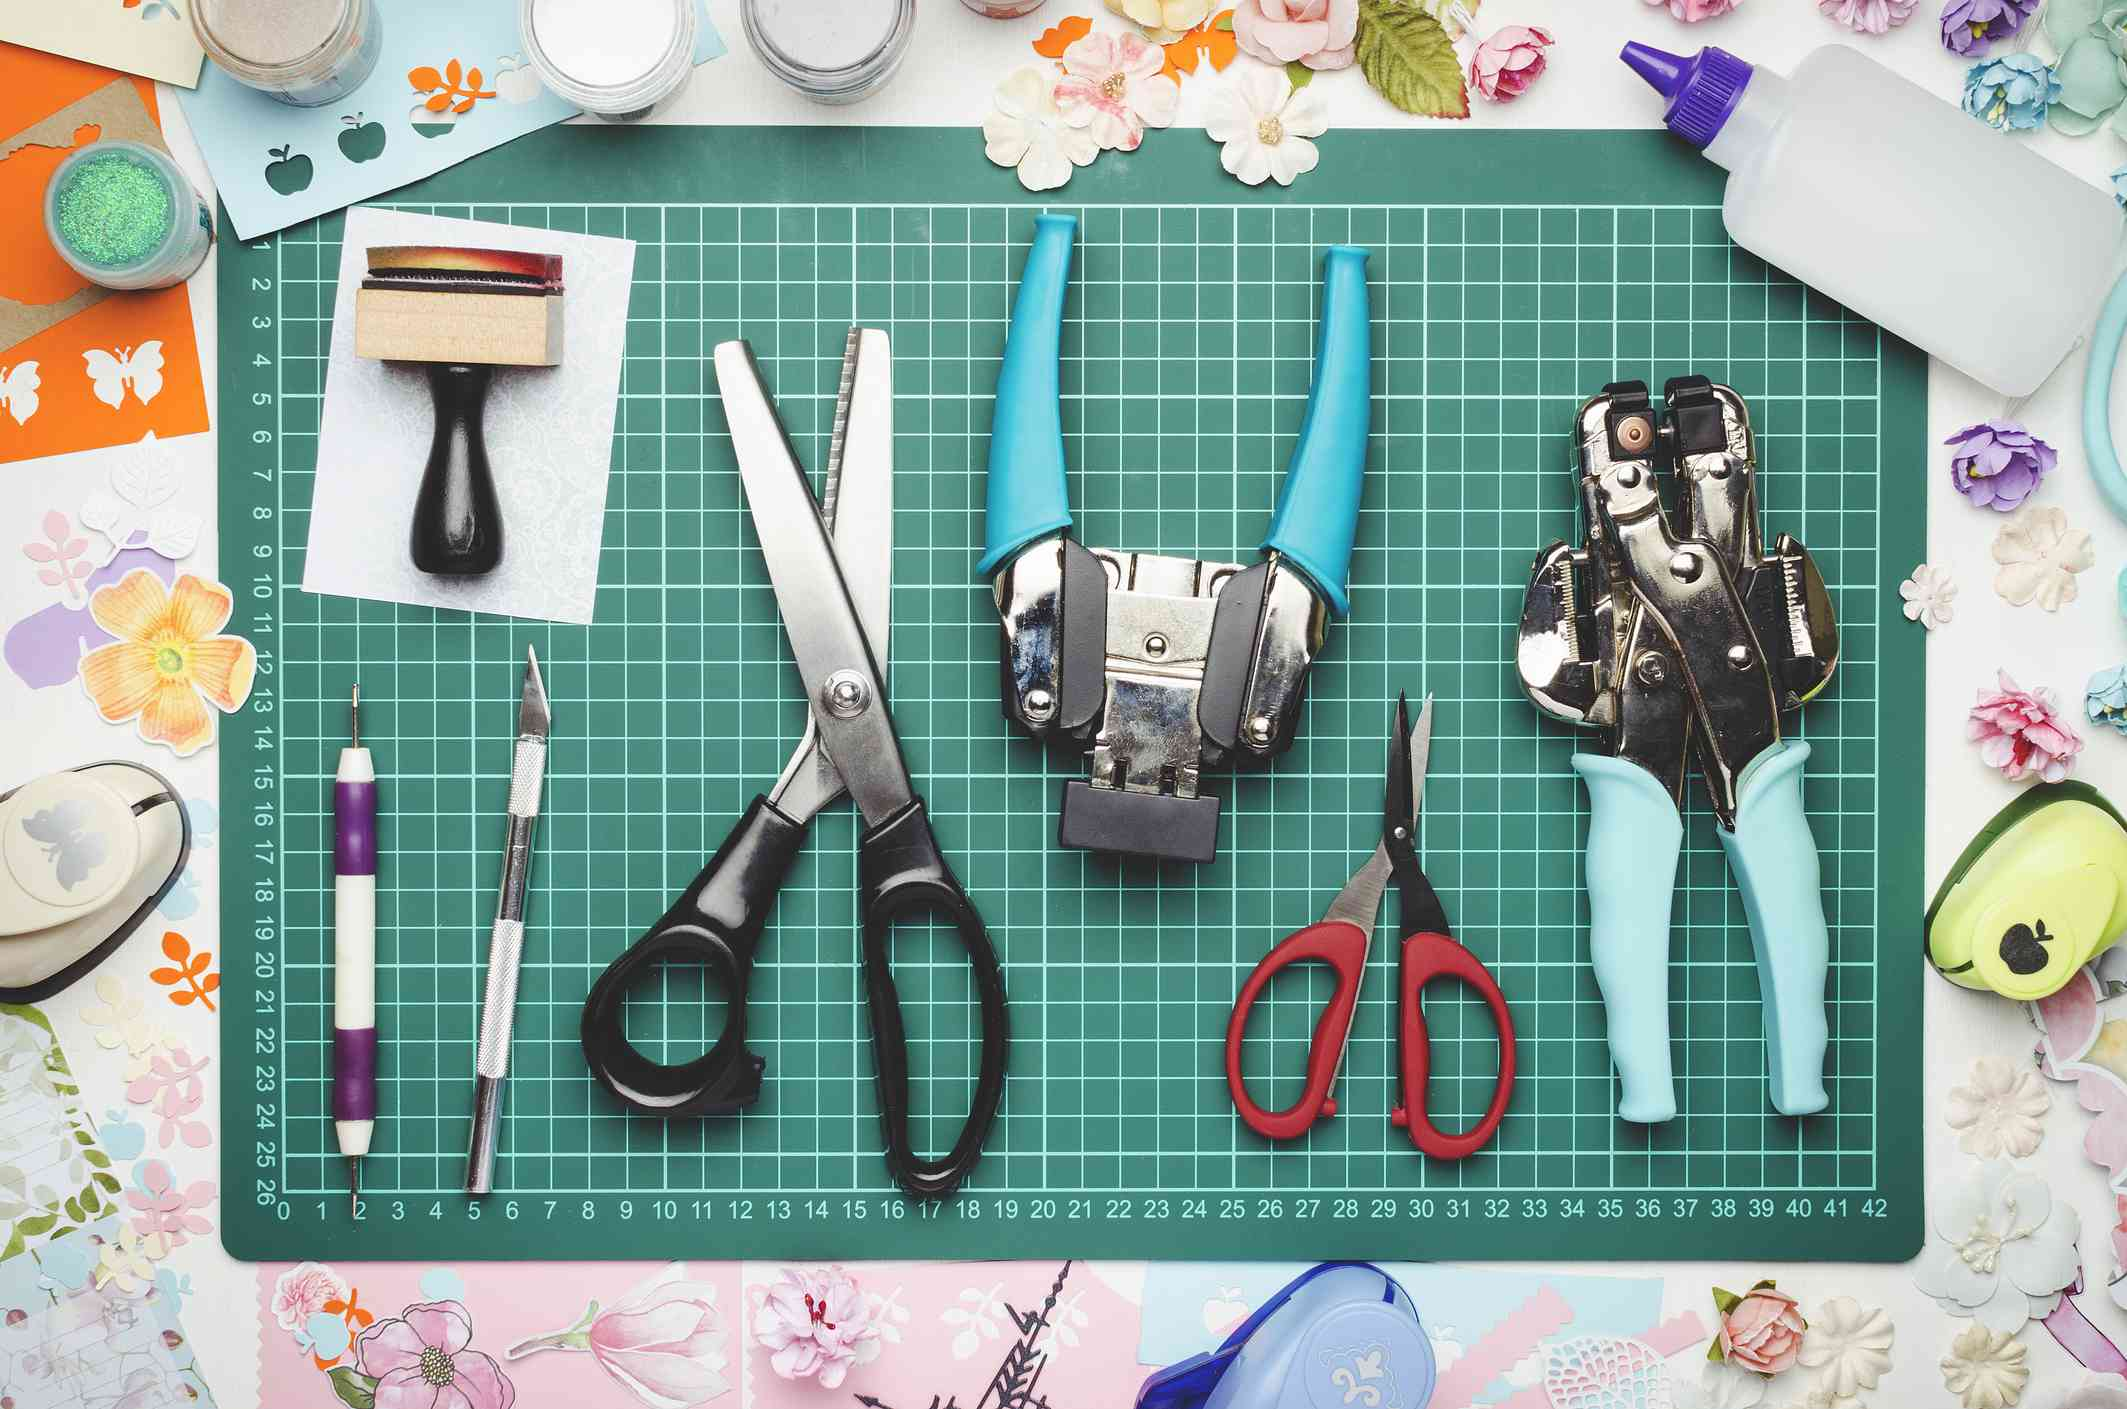 Tools for scrapbooking and creativity on green cutting mat